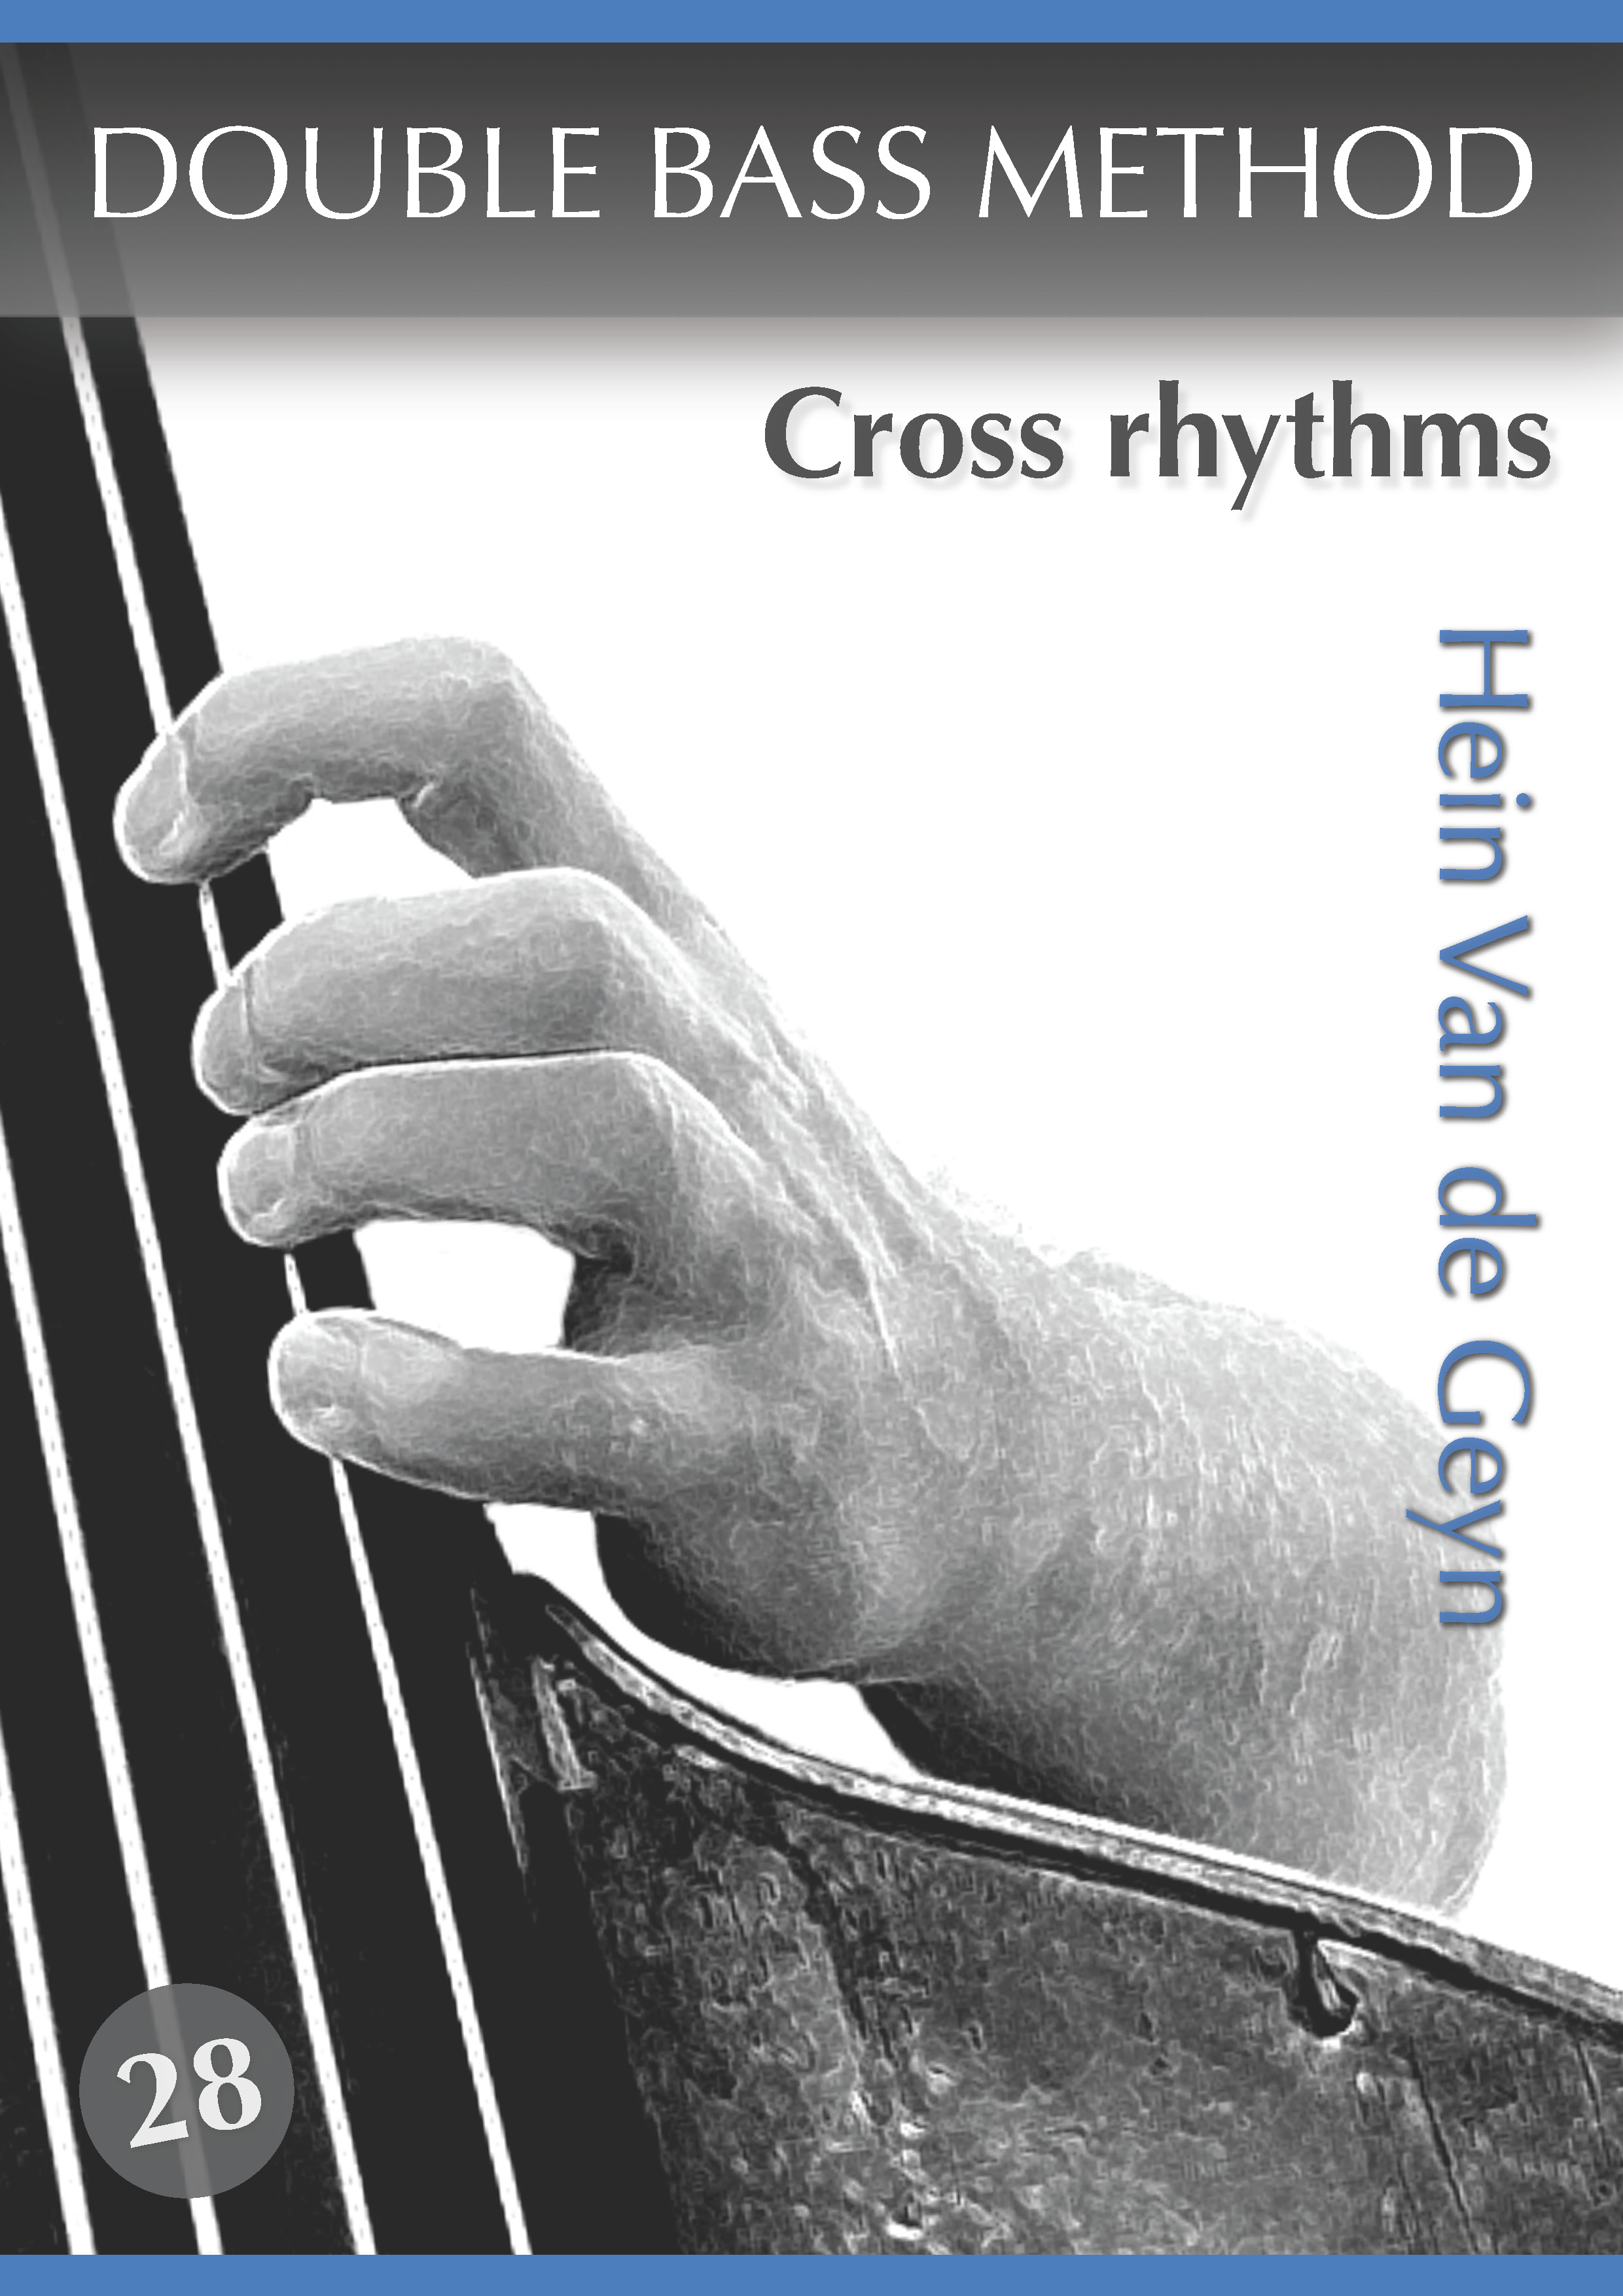 Cross rhythms - Hein Van de Geyn - Double Bass Method